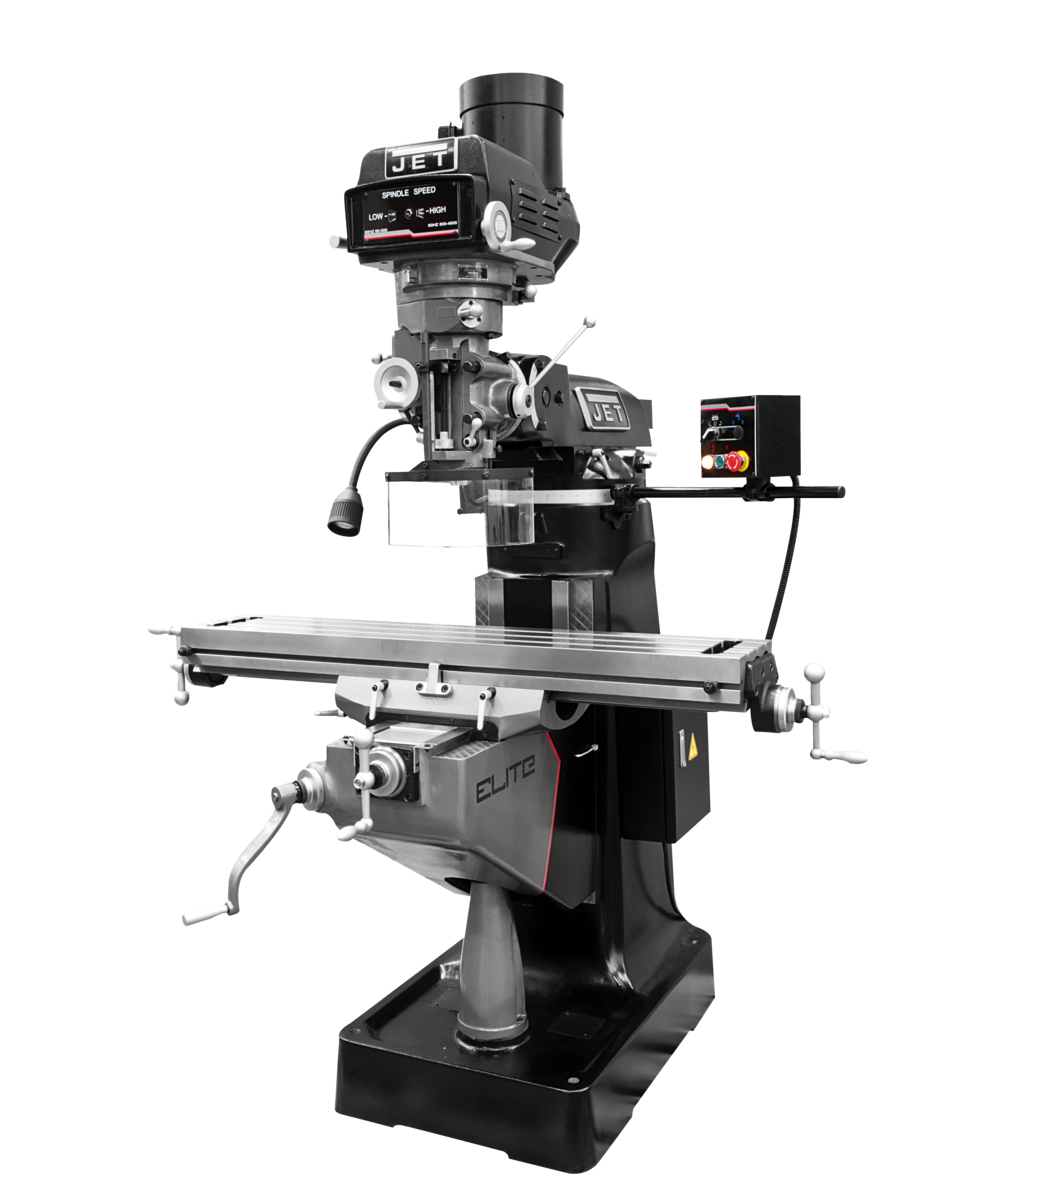 ETM-949 Mill with 2-Axis Newall DP700 DRO and X-Axis JET Powerfeed